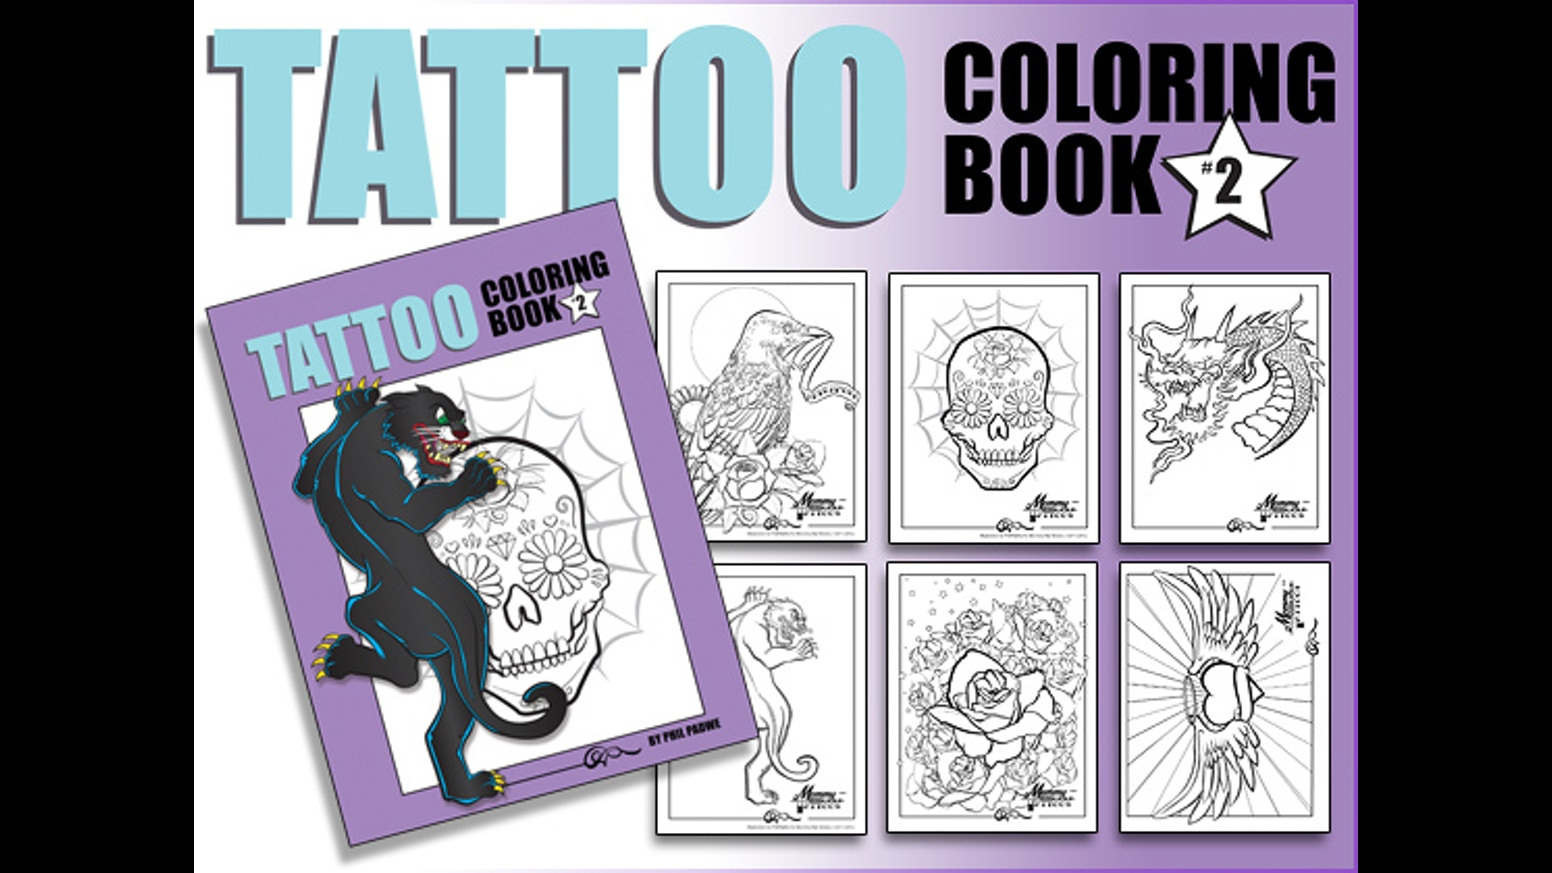 The coolest coloring book ever - Help Fund The Coolest Coloring Book Ever The Artist Behind Mommy Has A Tattoo Is Back With Over 30 Amazing Illustrations